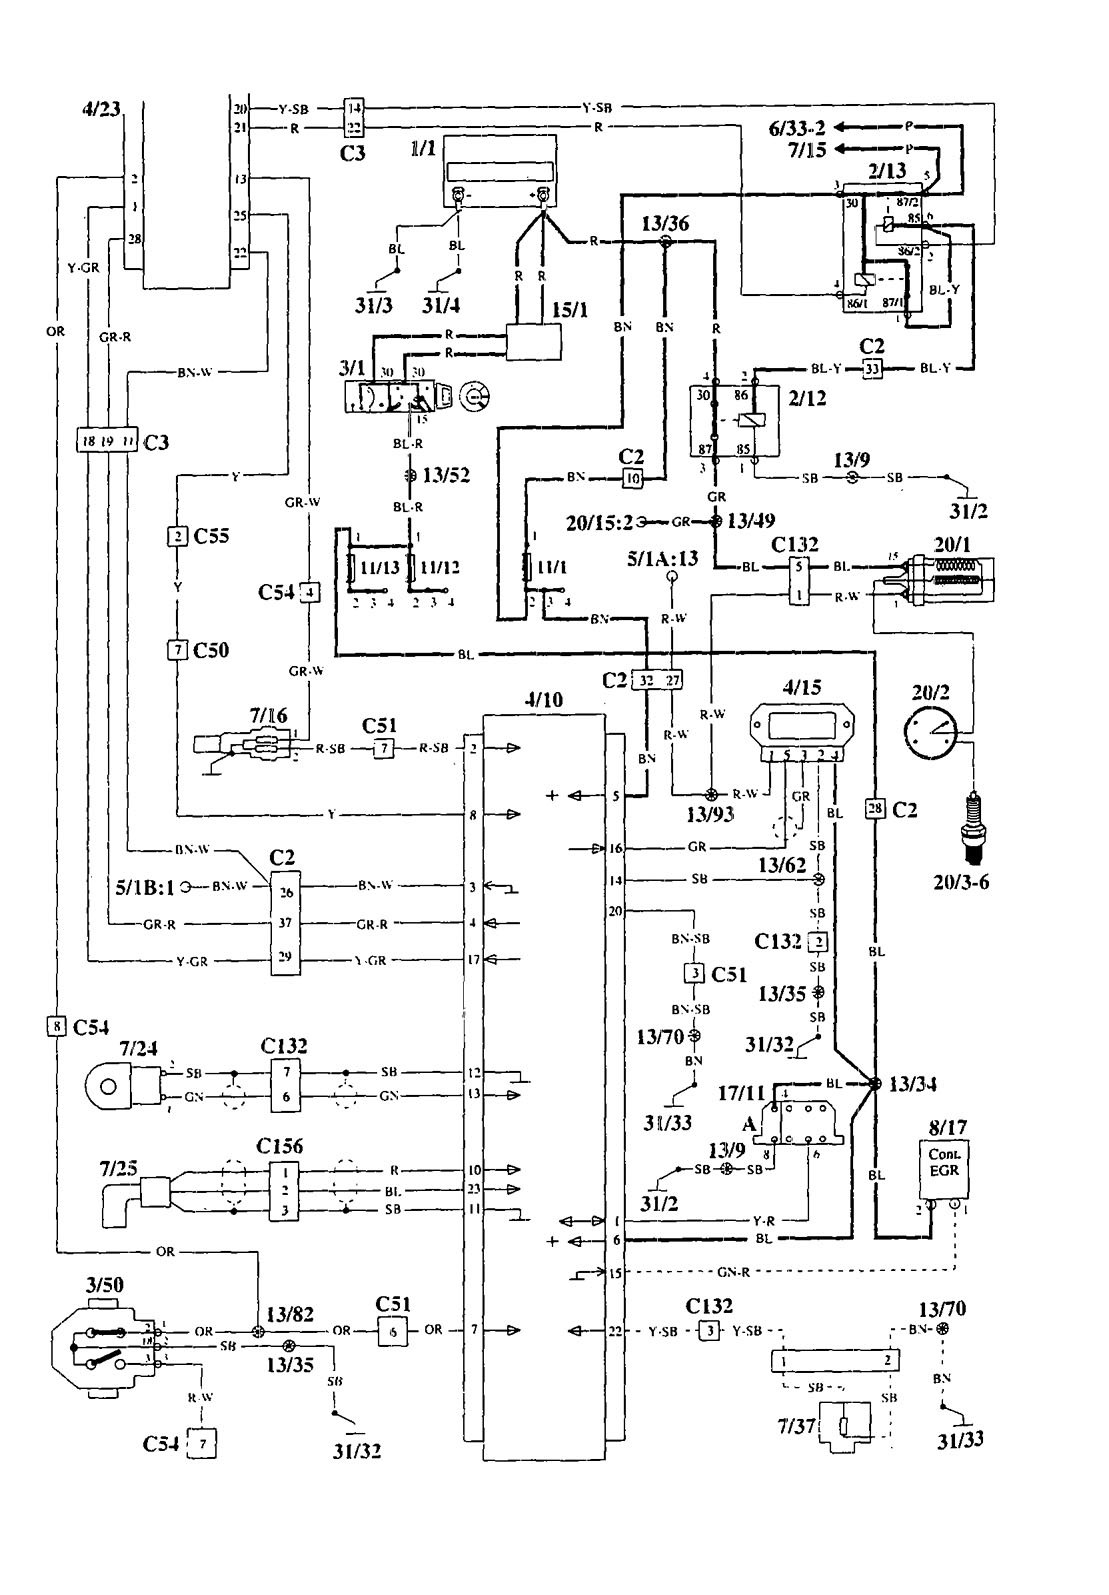 1973 dodge dart sport wiring diagram 2003 ram 1500 trailer 2016 engine and fuse box